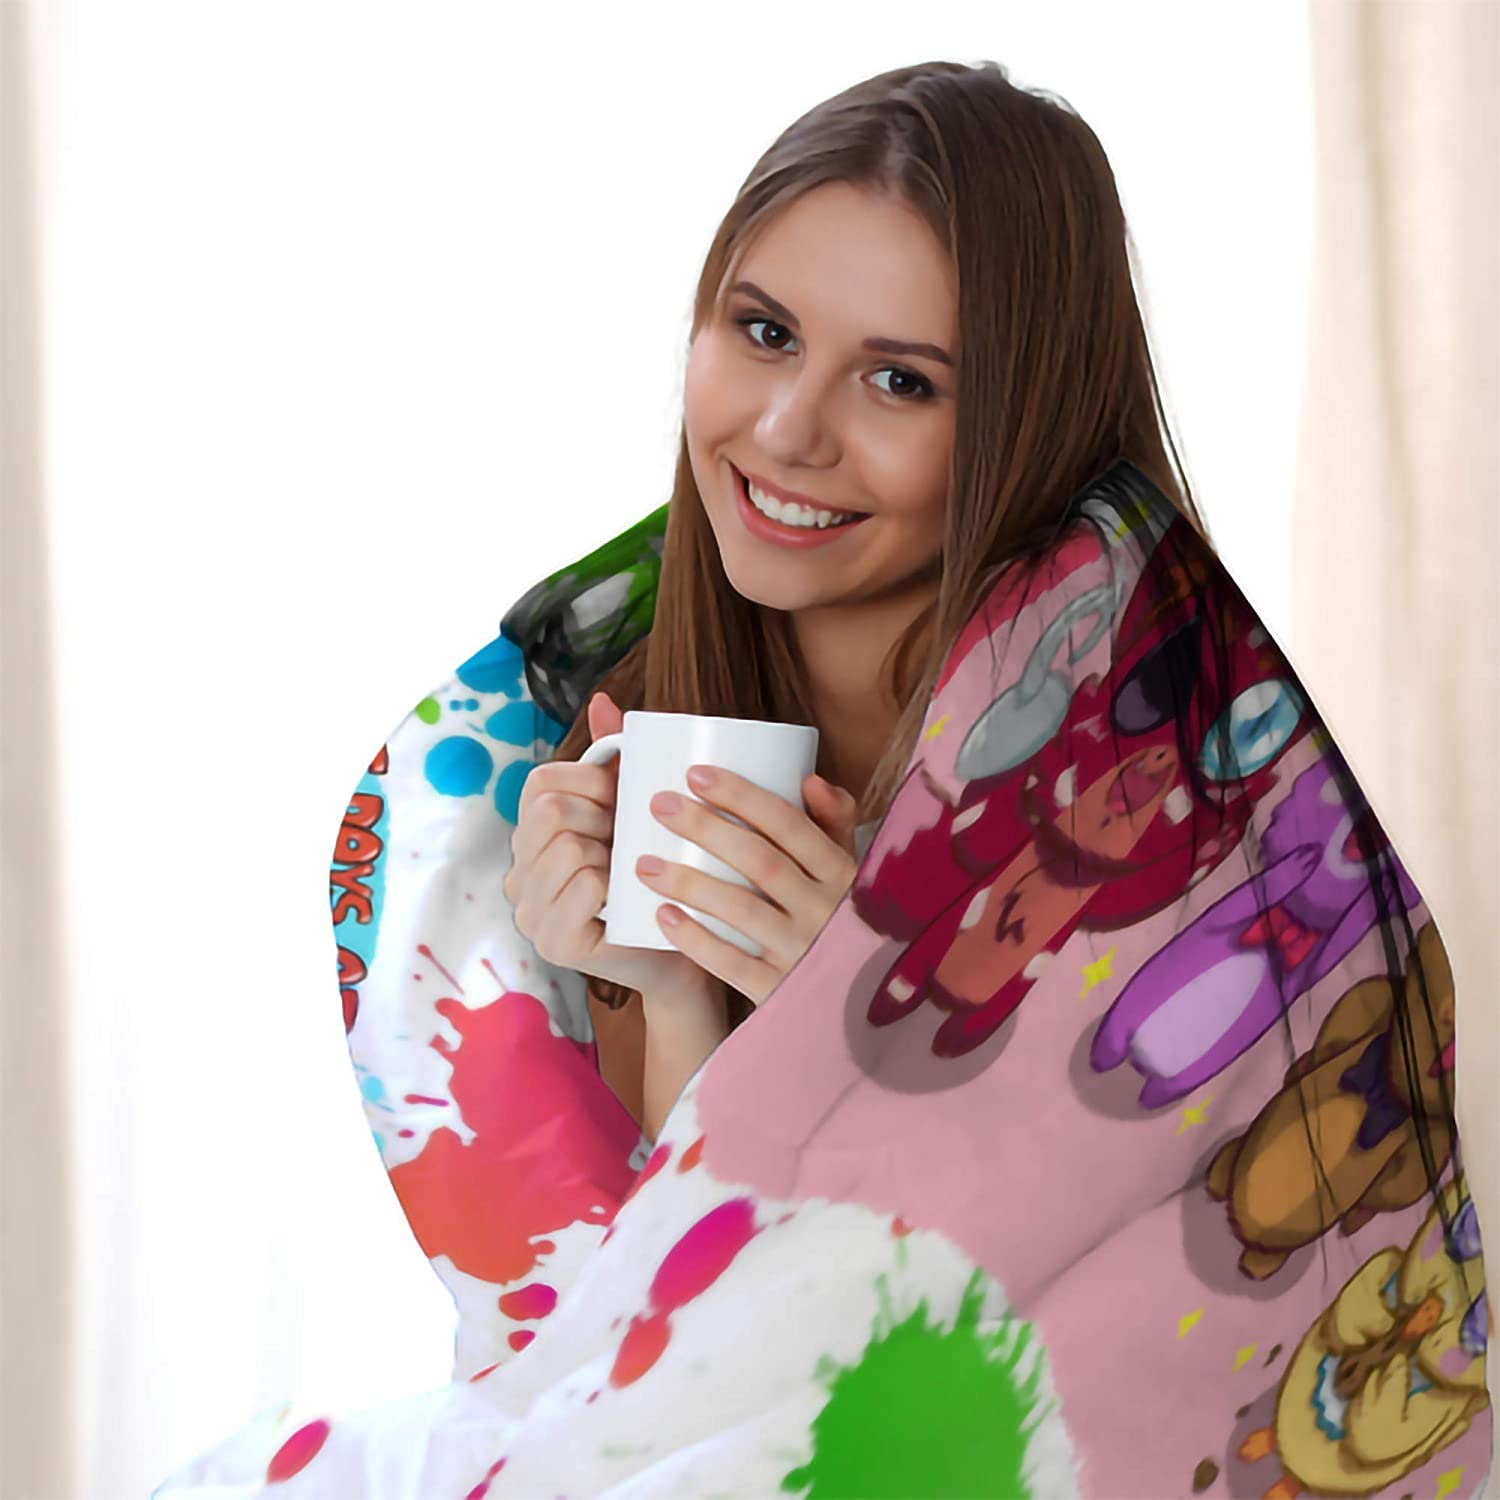 Five Nights at Freddys Ultra-Soft Micro Fleece Kids Blanket Microfiber Blanket,All Seasons Warm Decoration for Bedding Sofa and Travel 50X40